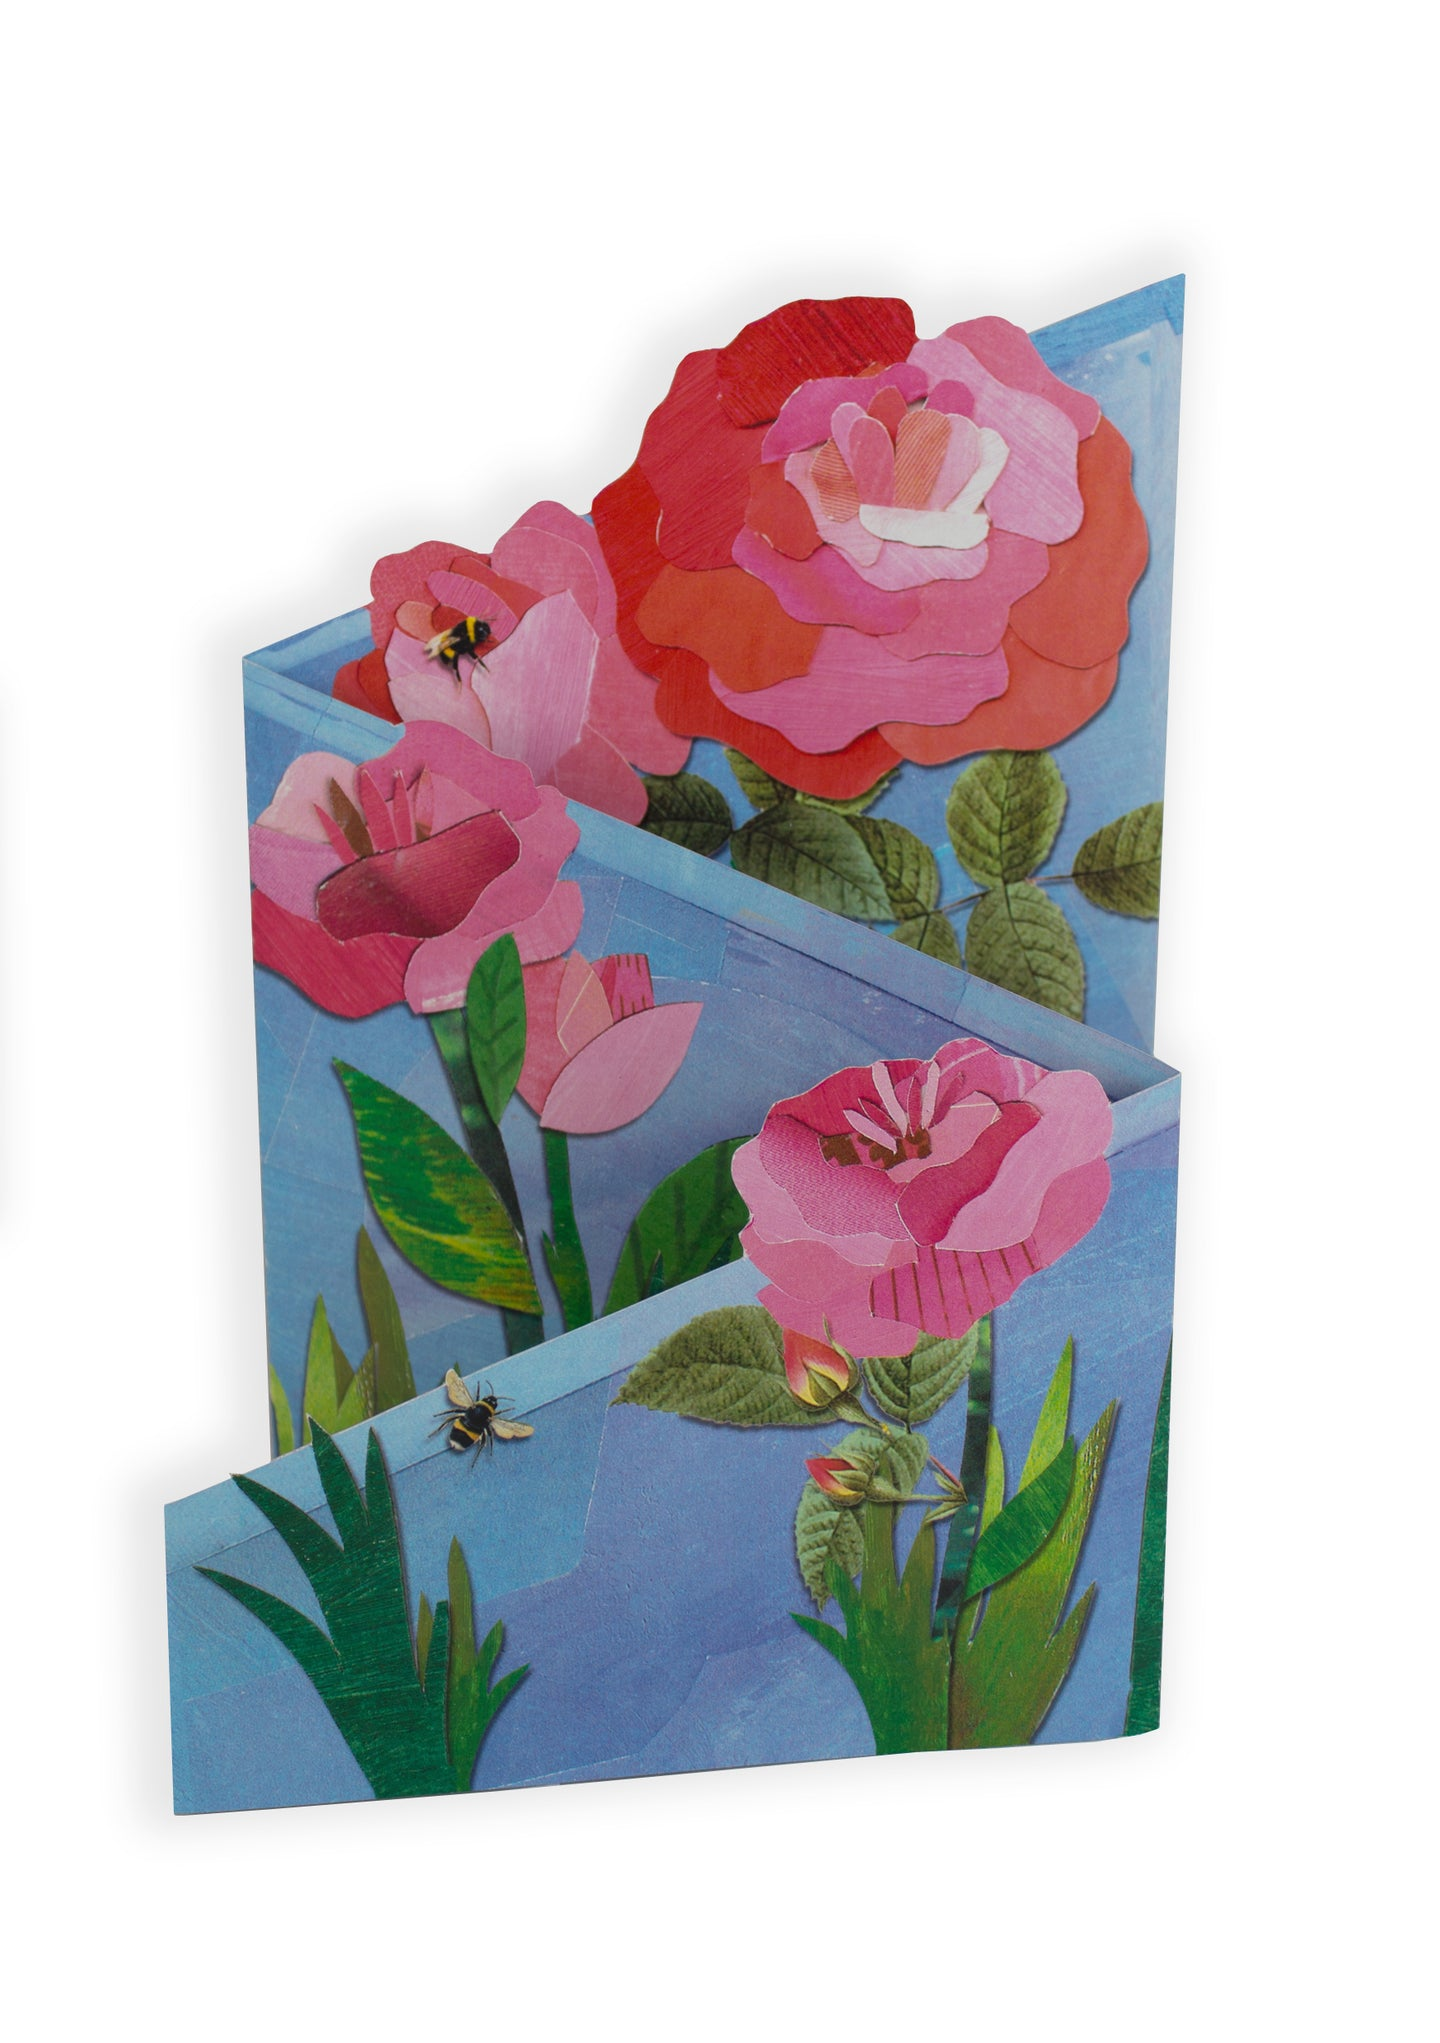 'English Roses' Blank Greeting Card